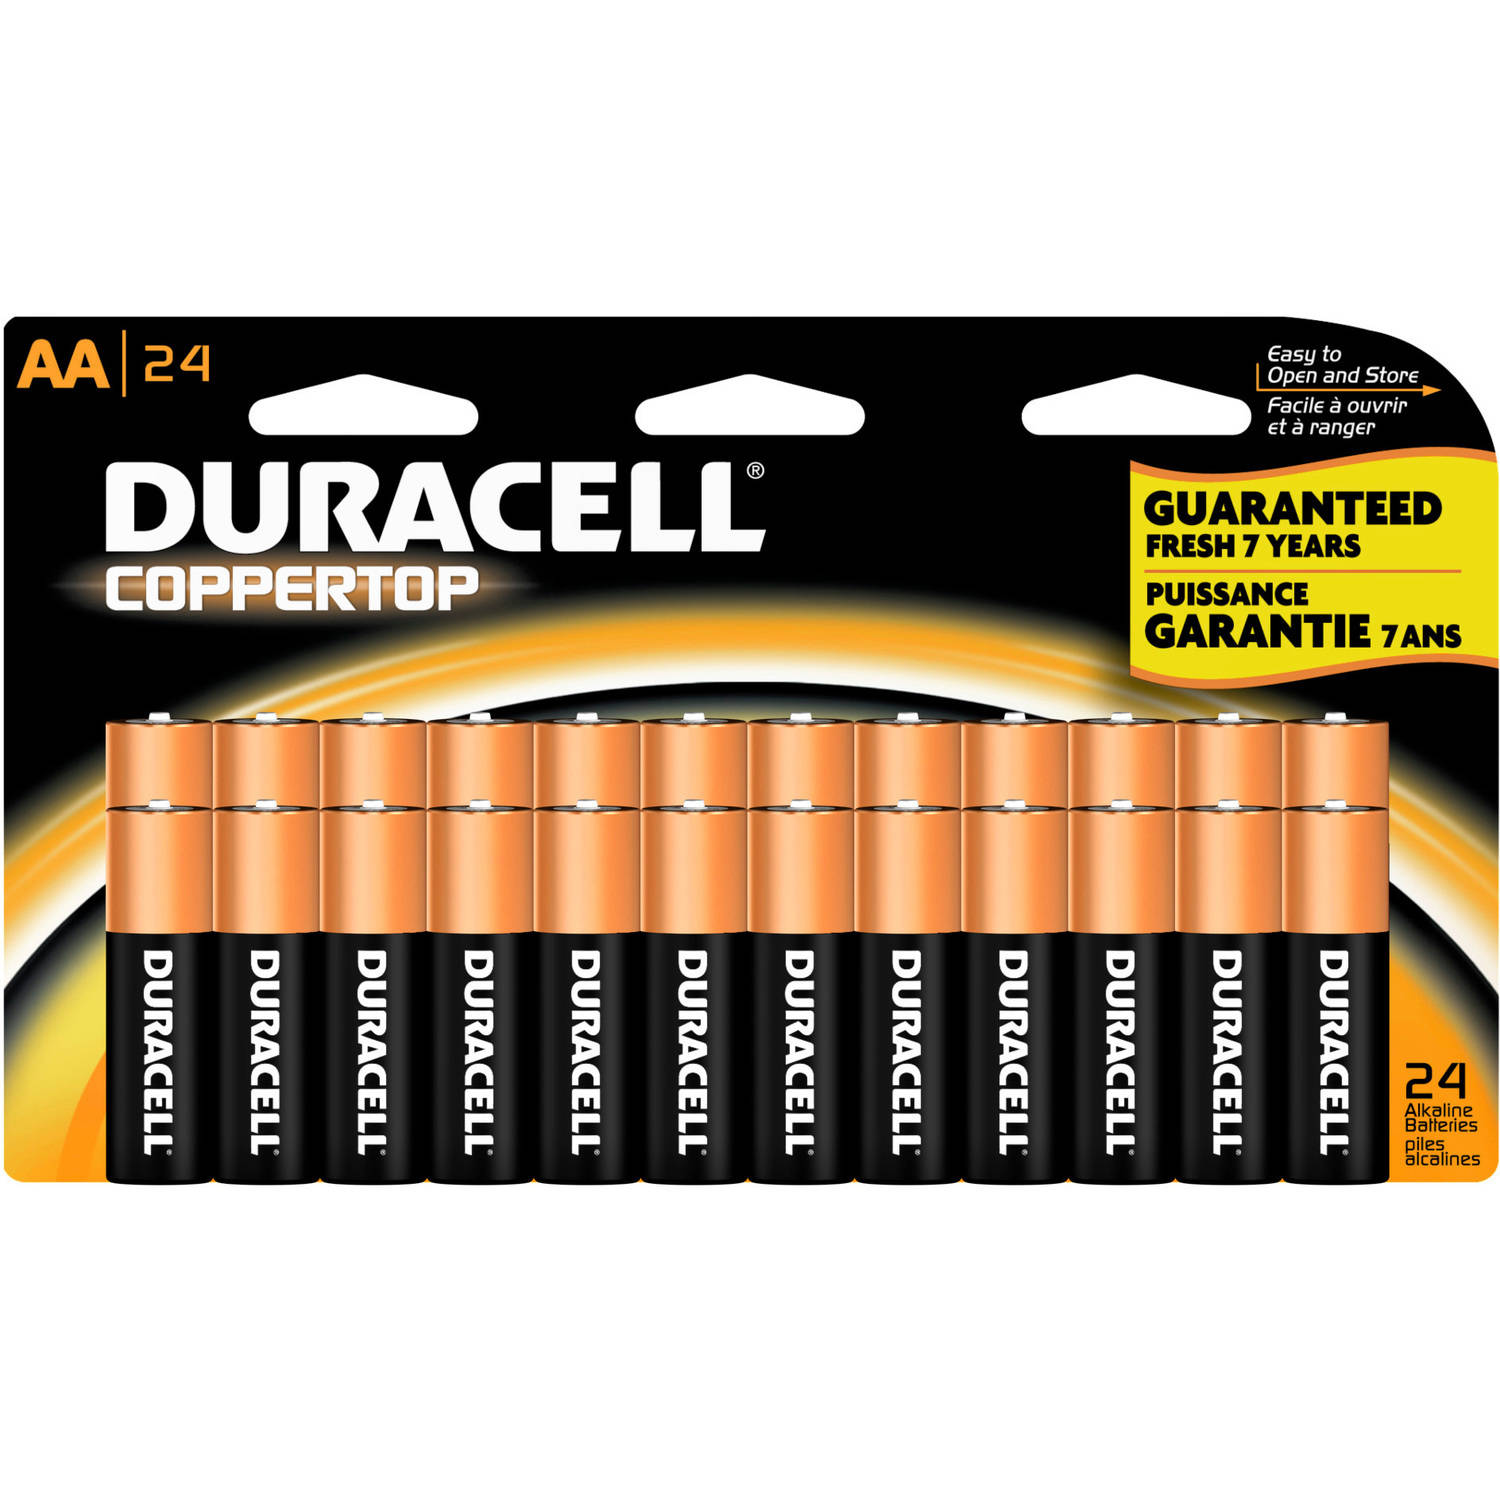 Duracell Coppertop AA Household Batteries, 24ct